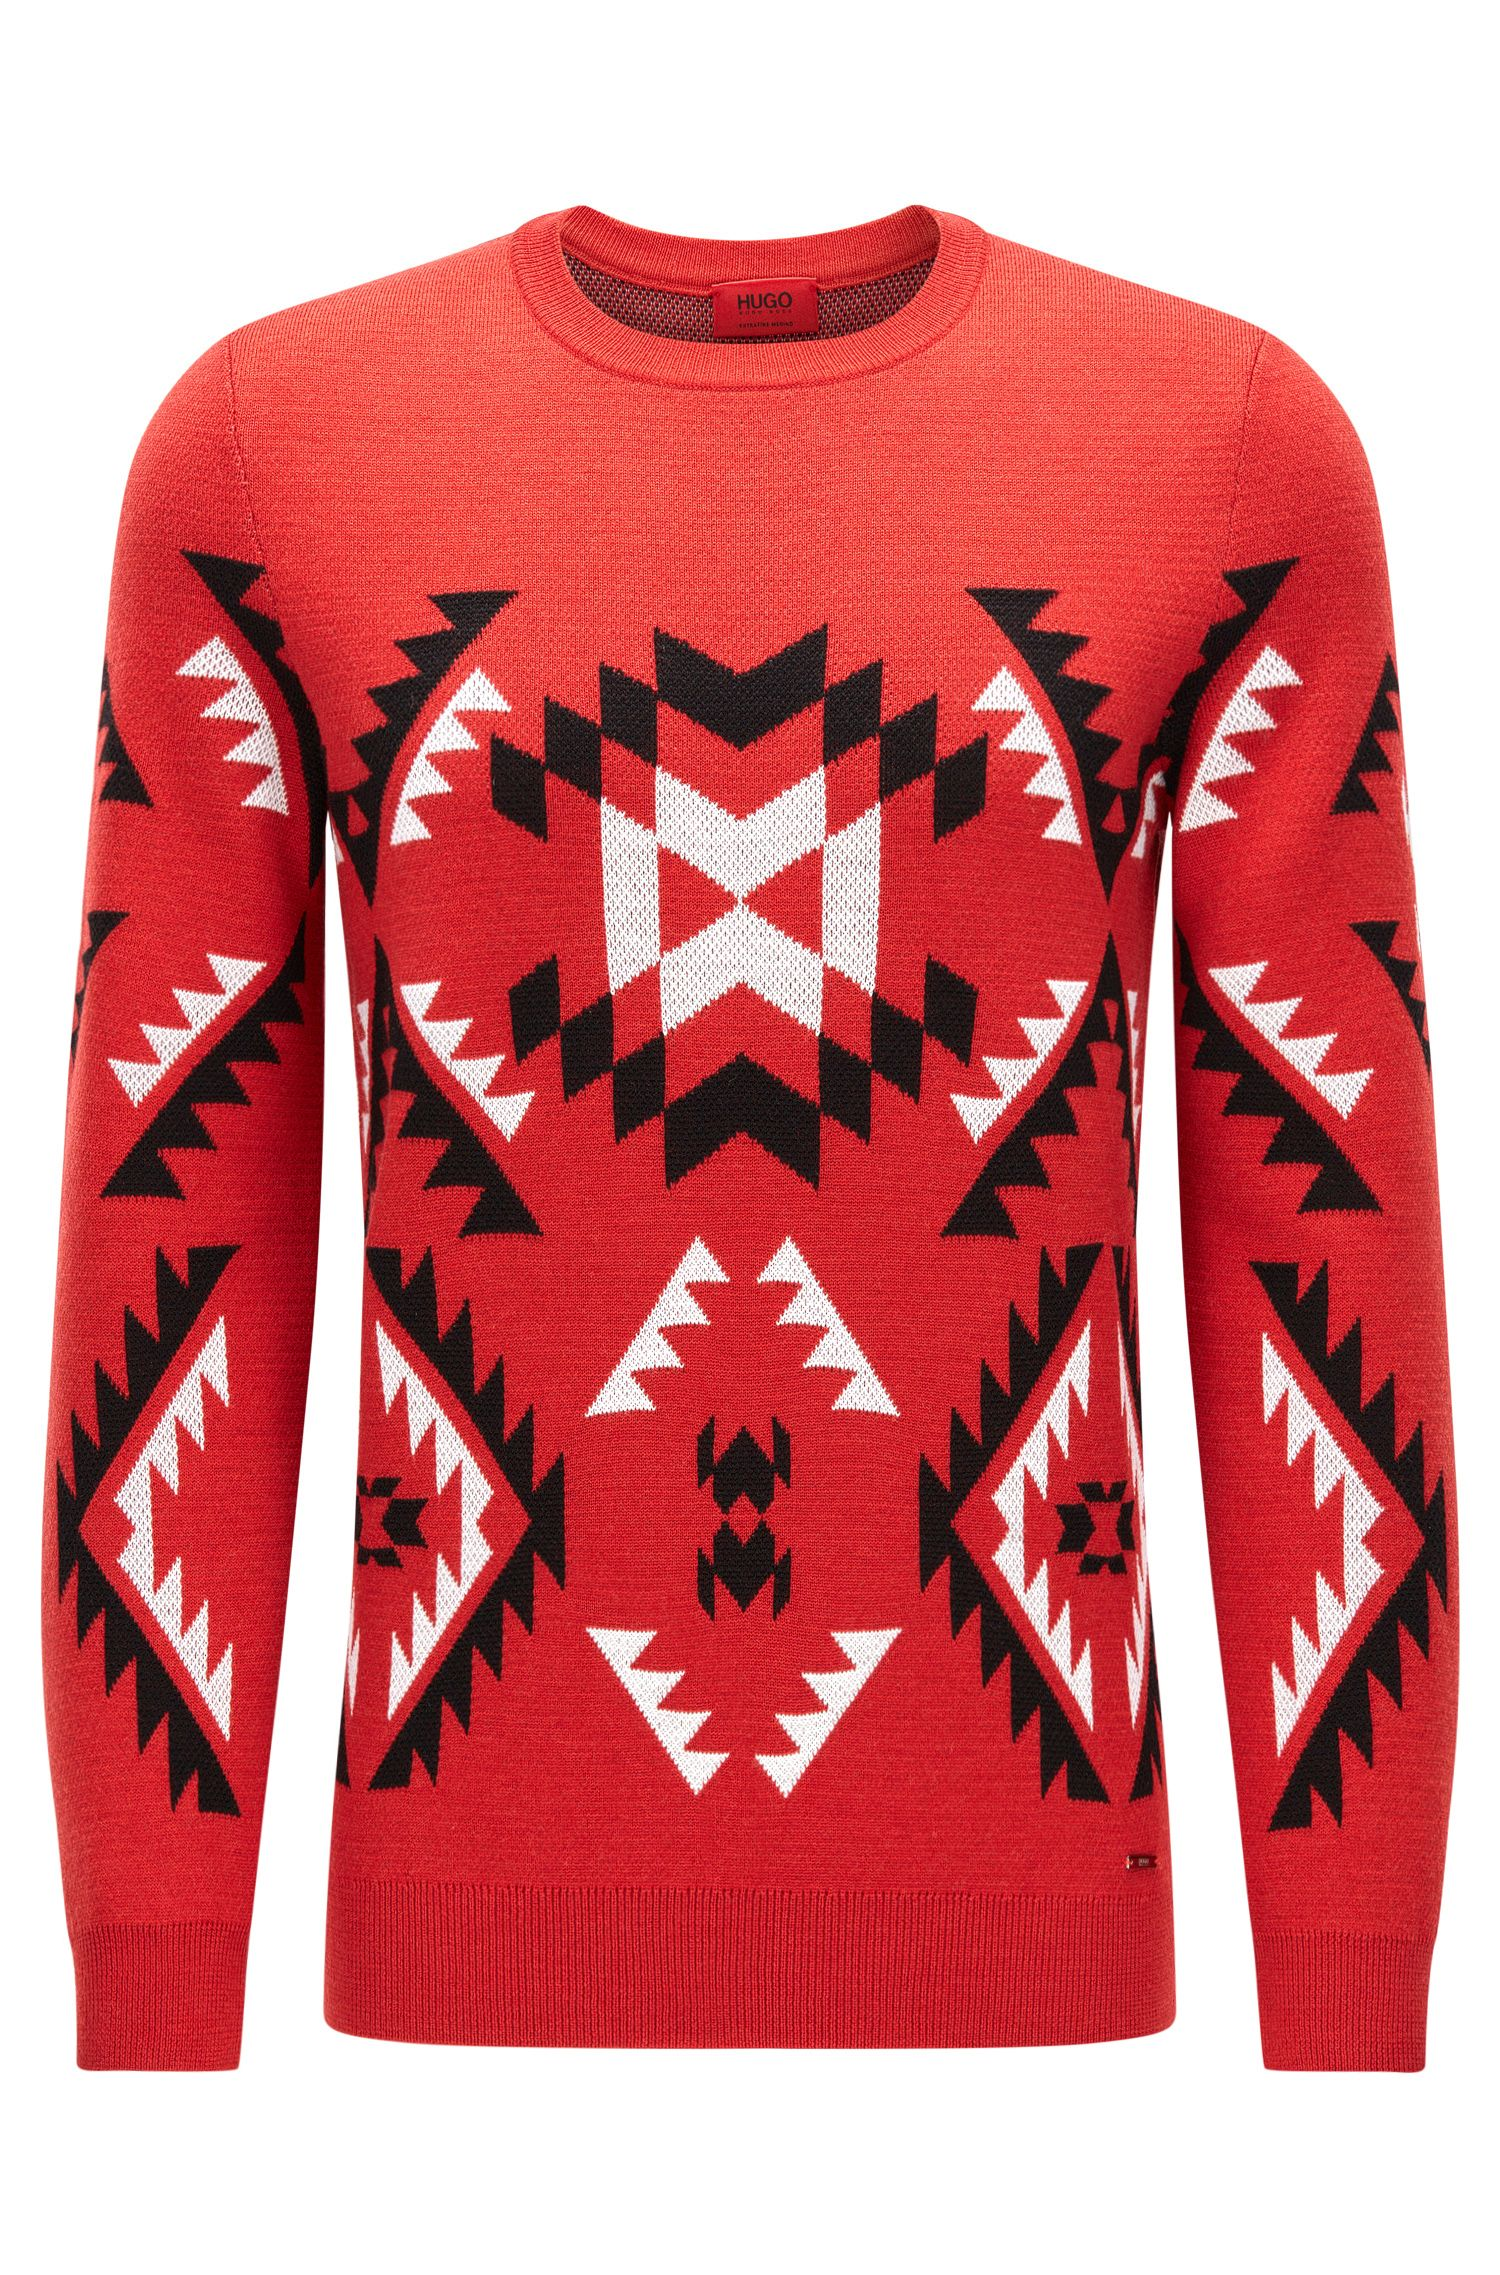 Patterned crew-neck sweater in virgin wool jacquard